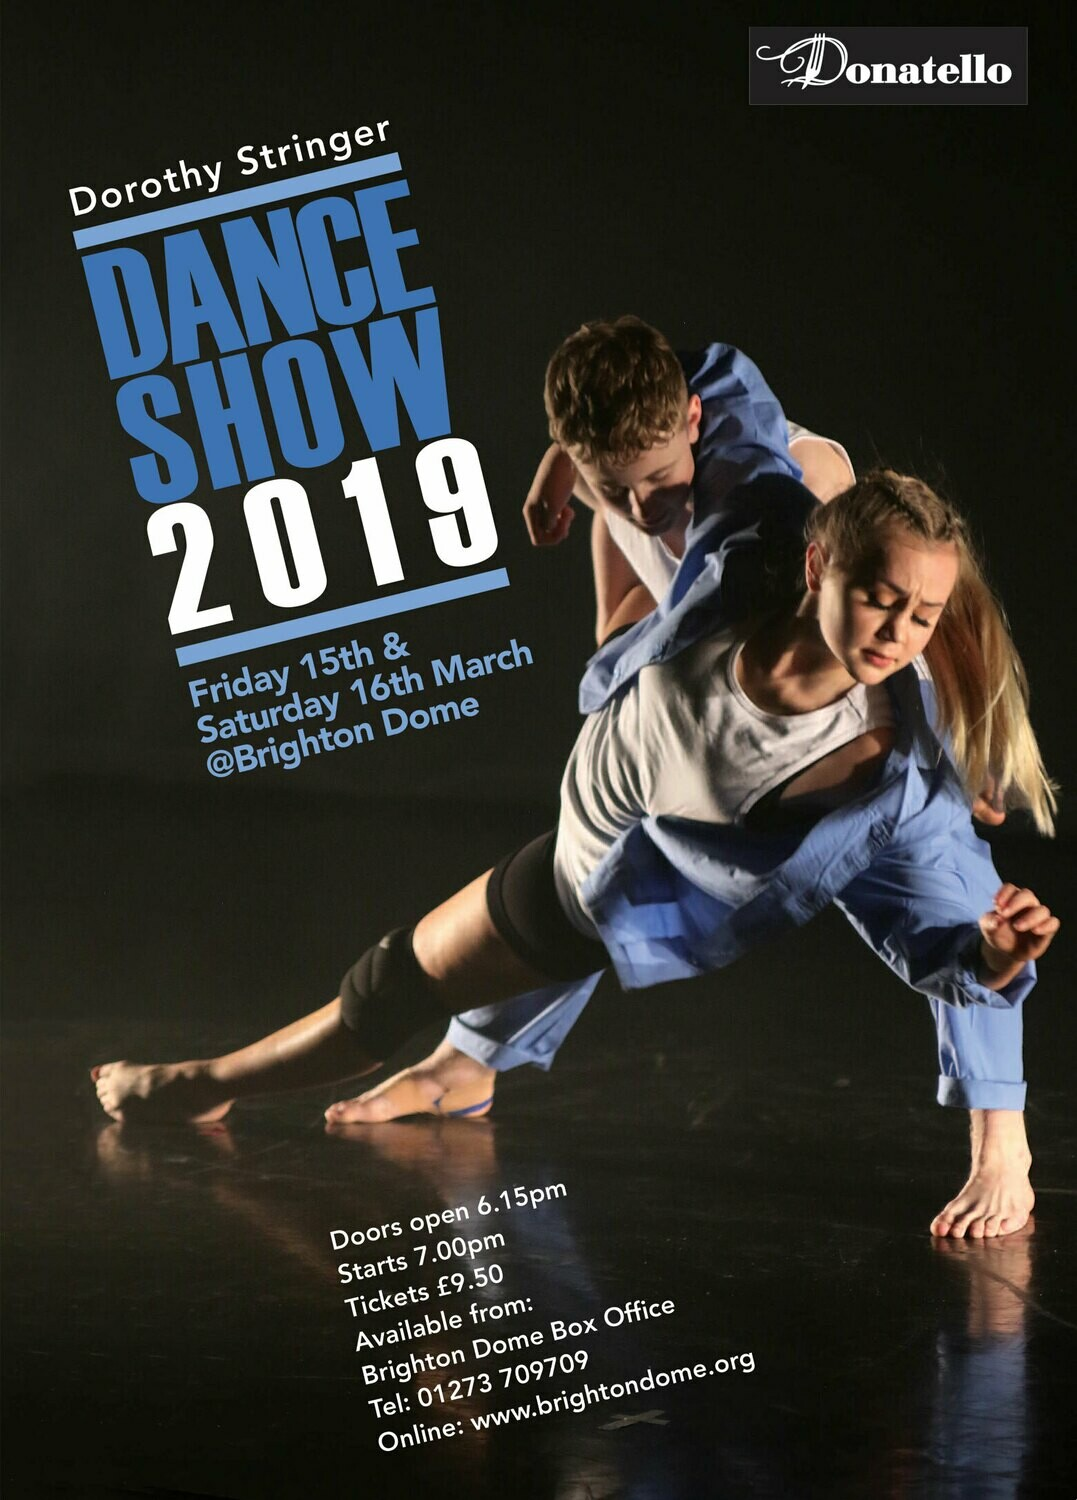 Dorothy Stringer Dance Show DVD 2019 (SD)